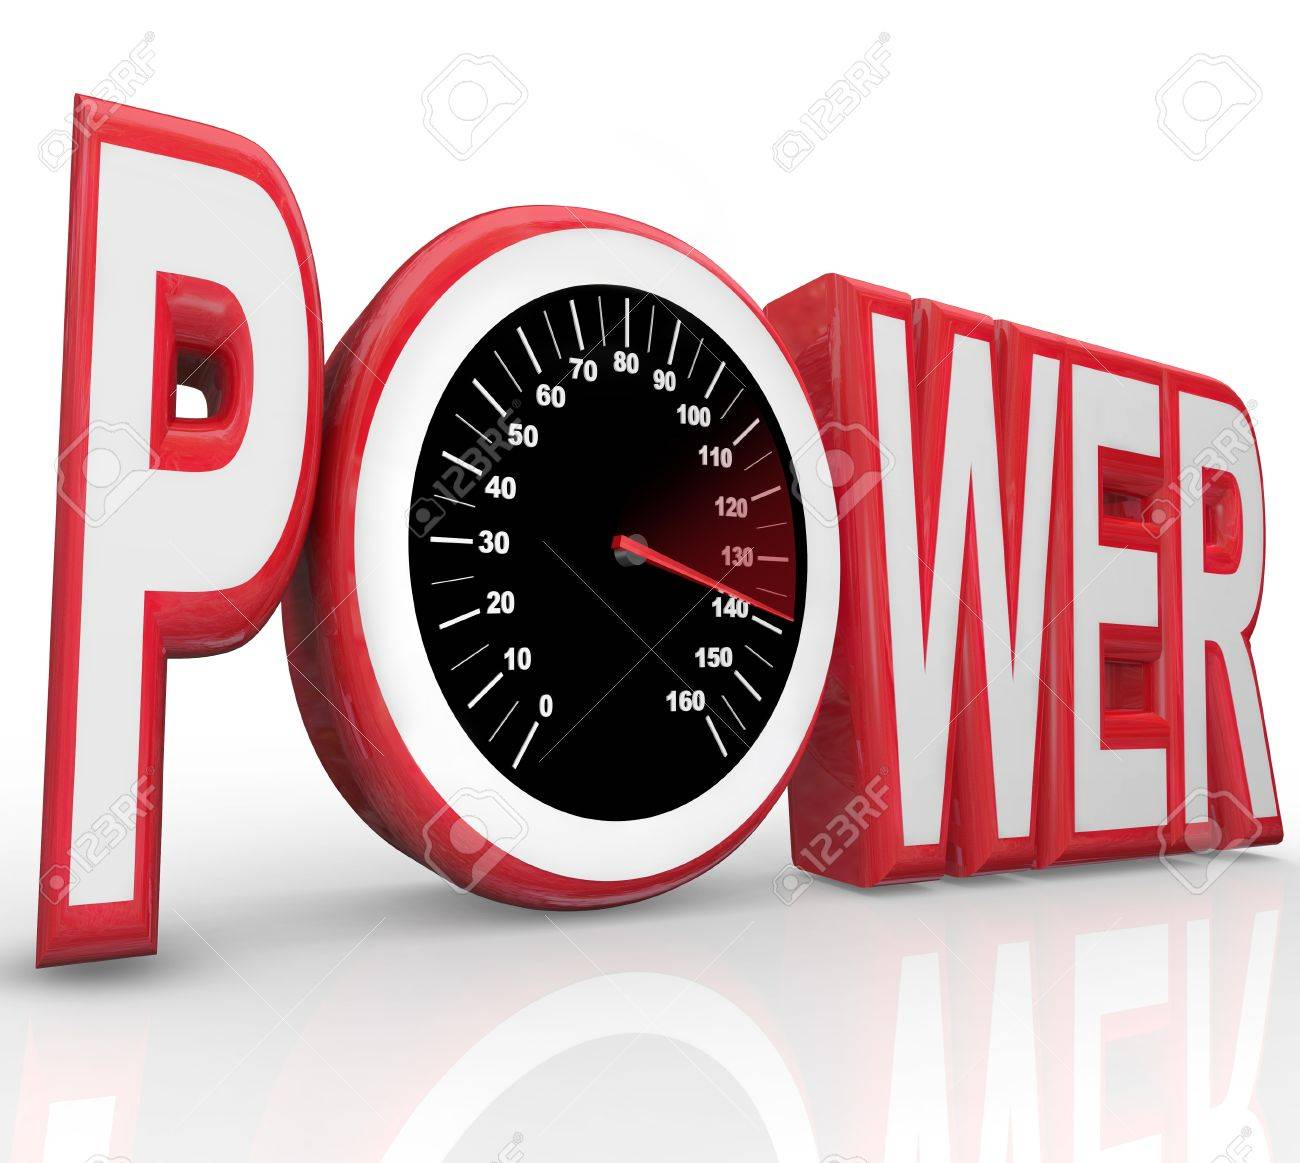 The word Power with a speedometer in the letter O representing powerful energy and speed racing to complete a challenge or win a race or competition Stock Photo - 12583733